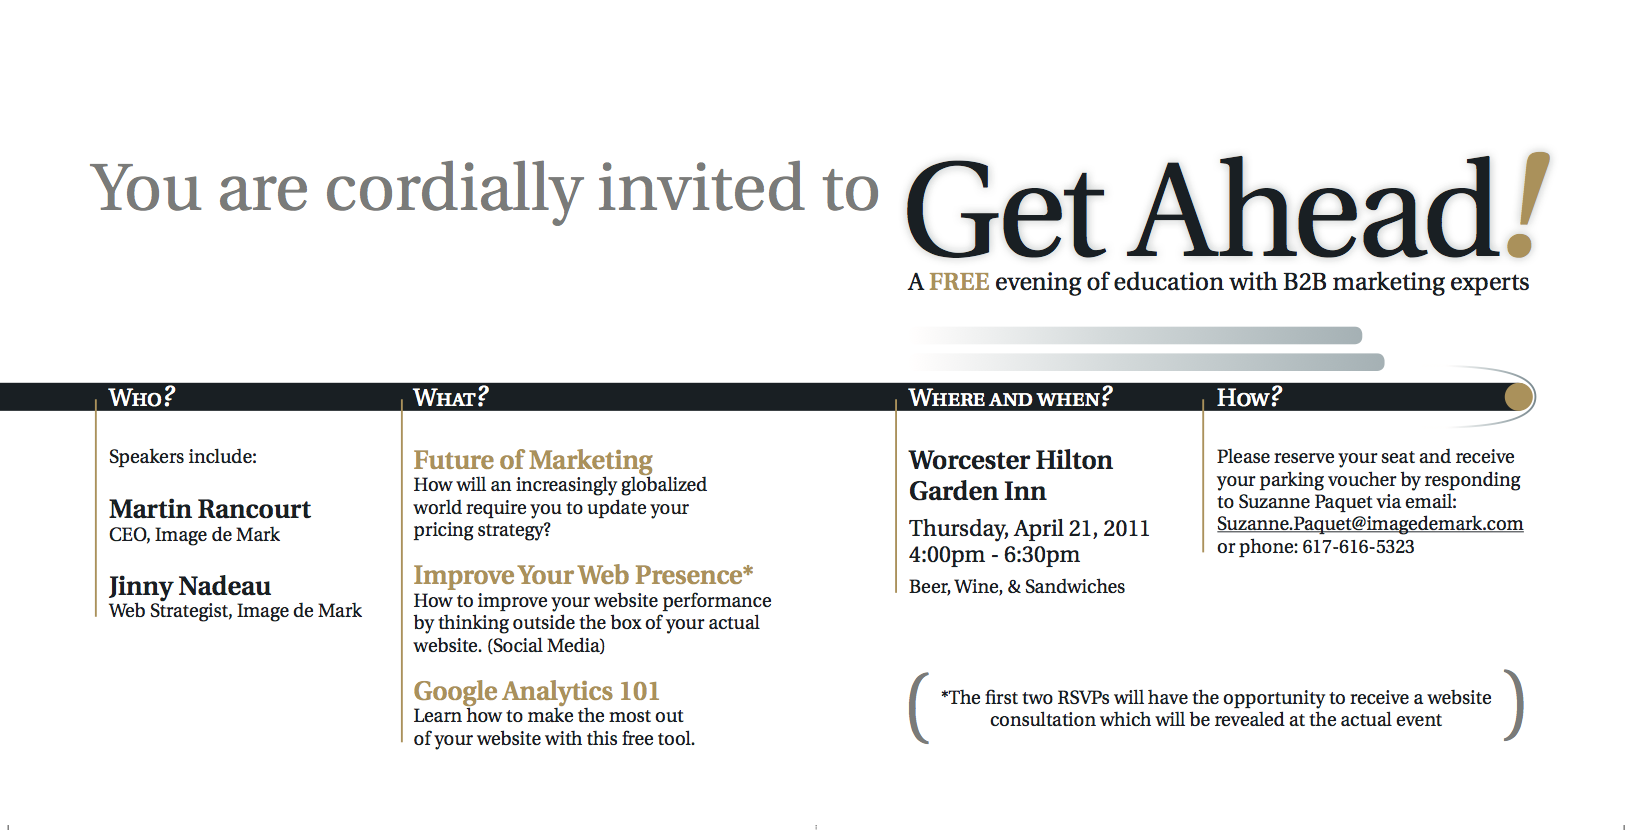 Get Ahead Event: Direct Mailer